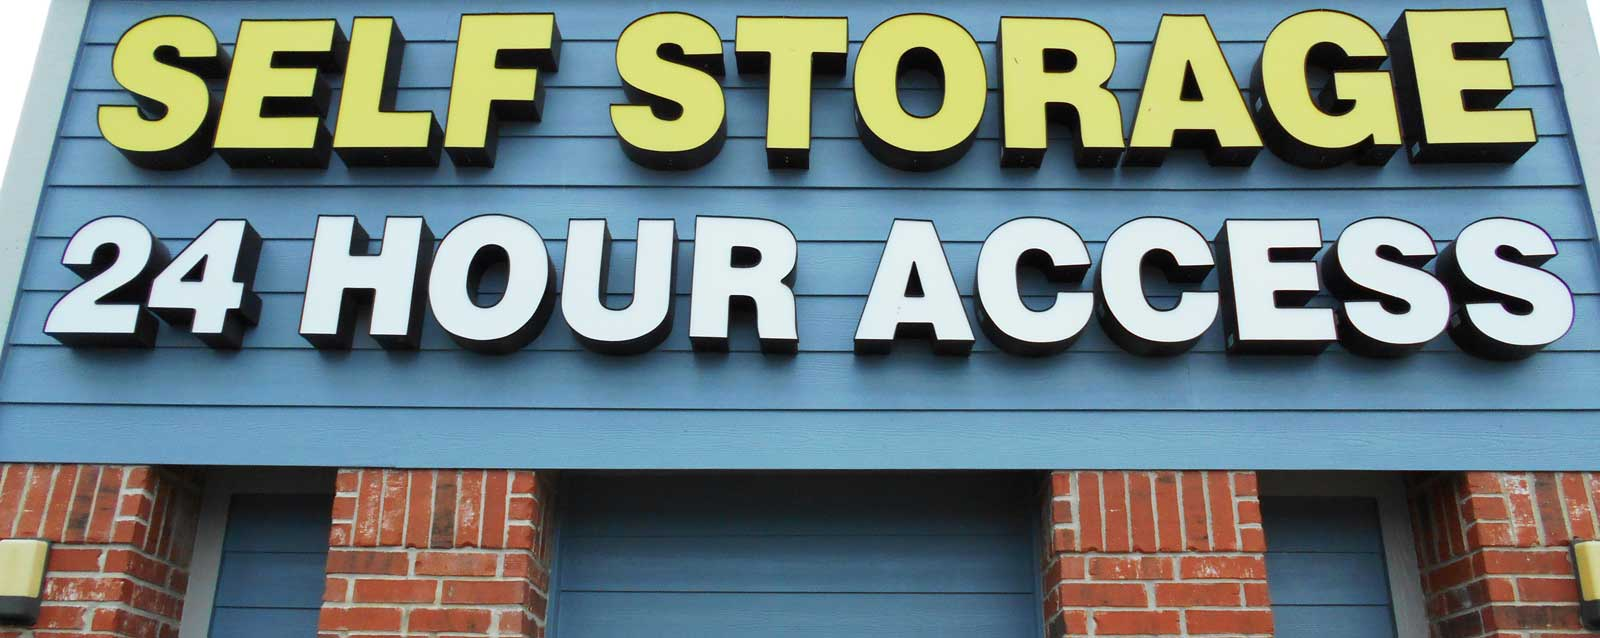 24 hour access at plano self storage